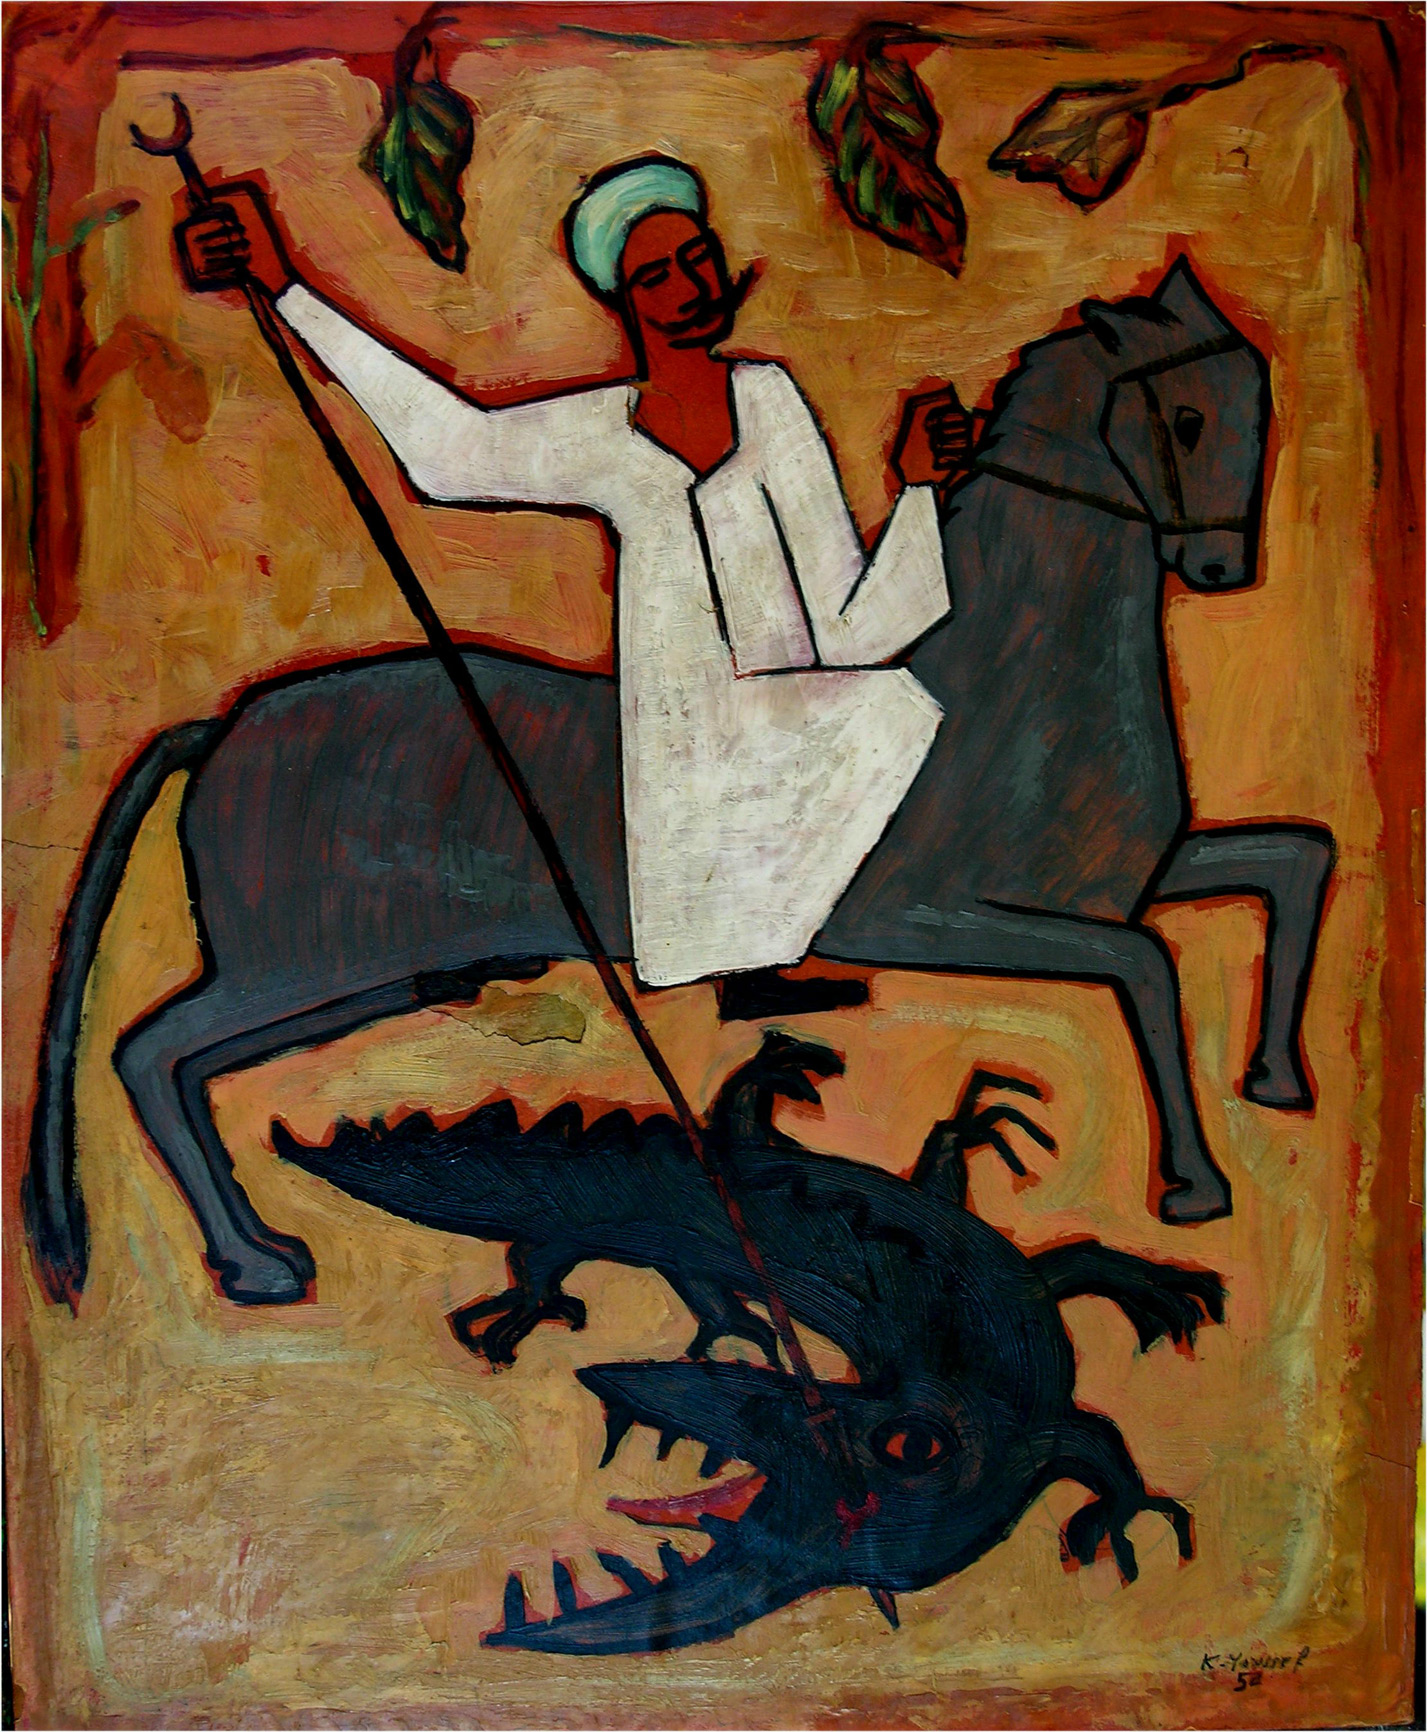 St. George & the Dragon Image